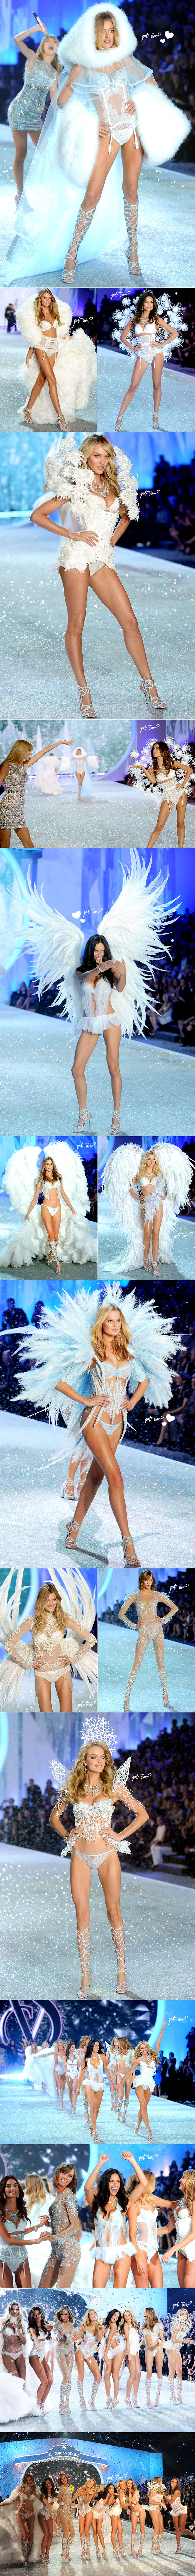 desfile-victorias-secret-fashion-show-blog-got-sin-snow-angels-3d-print-doutzen-kroes-adriana-lima-candice-swanepoel-taylor-swift-lingerie-azul-branca